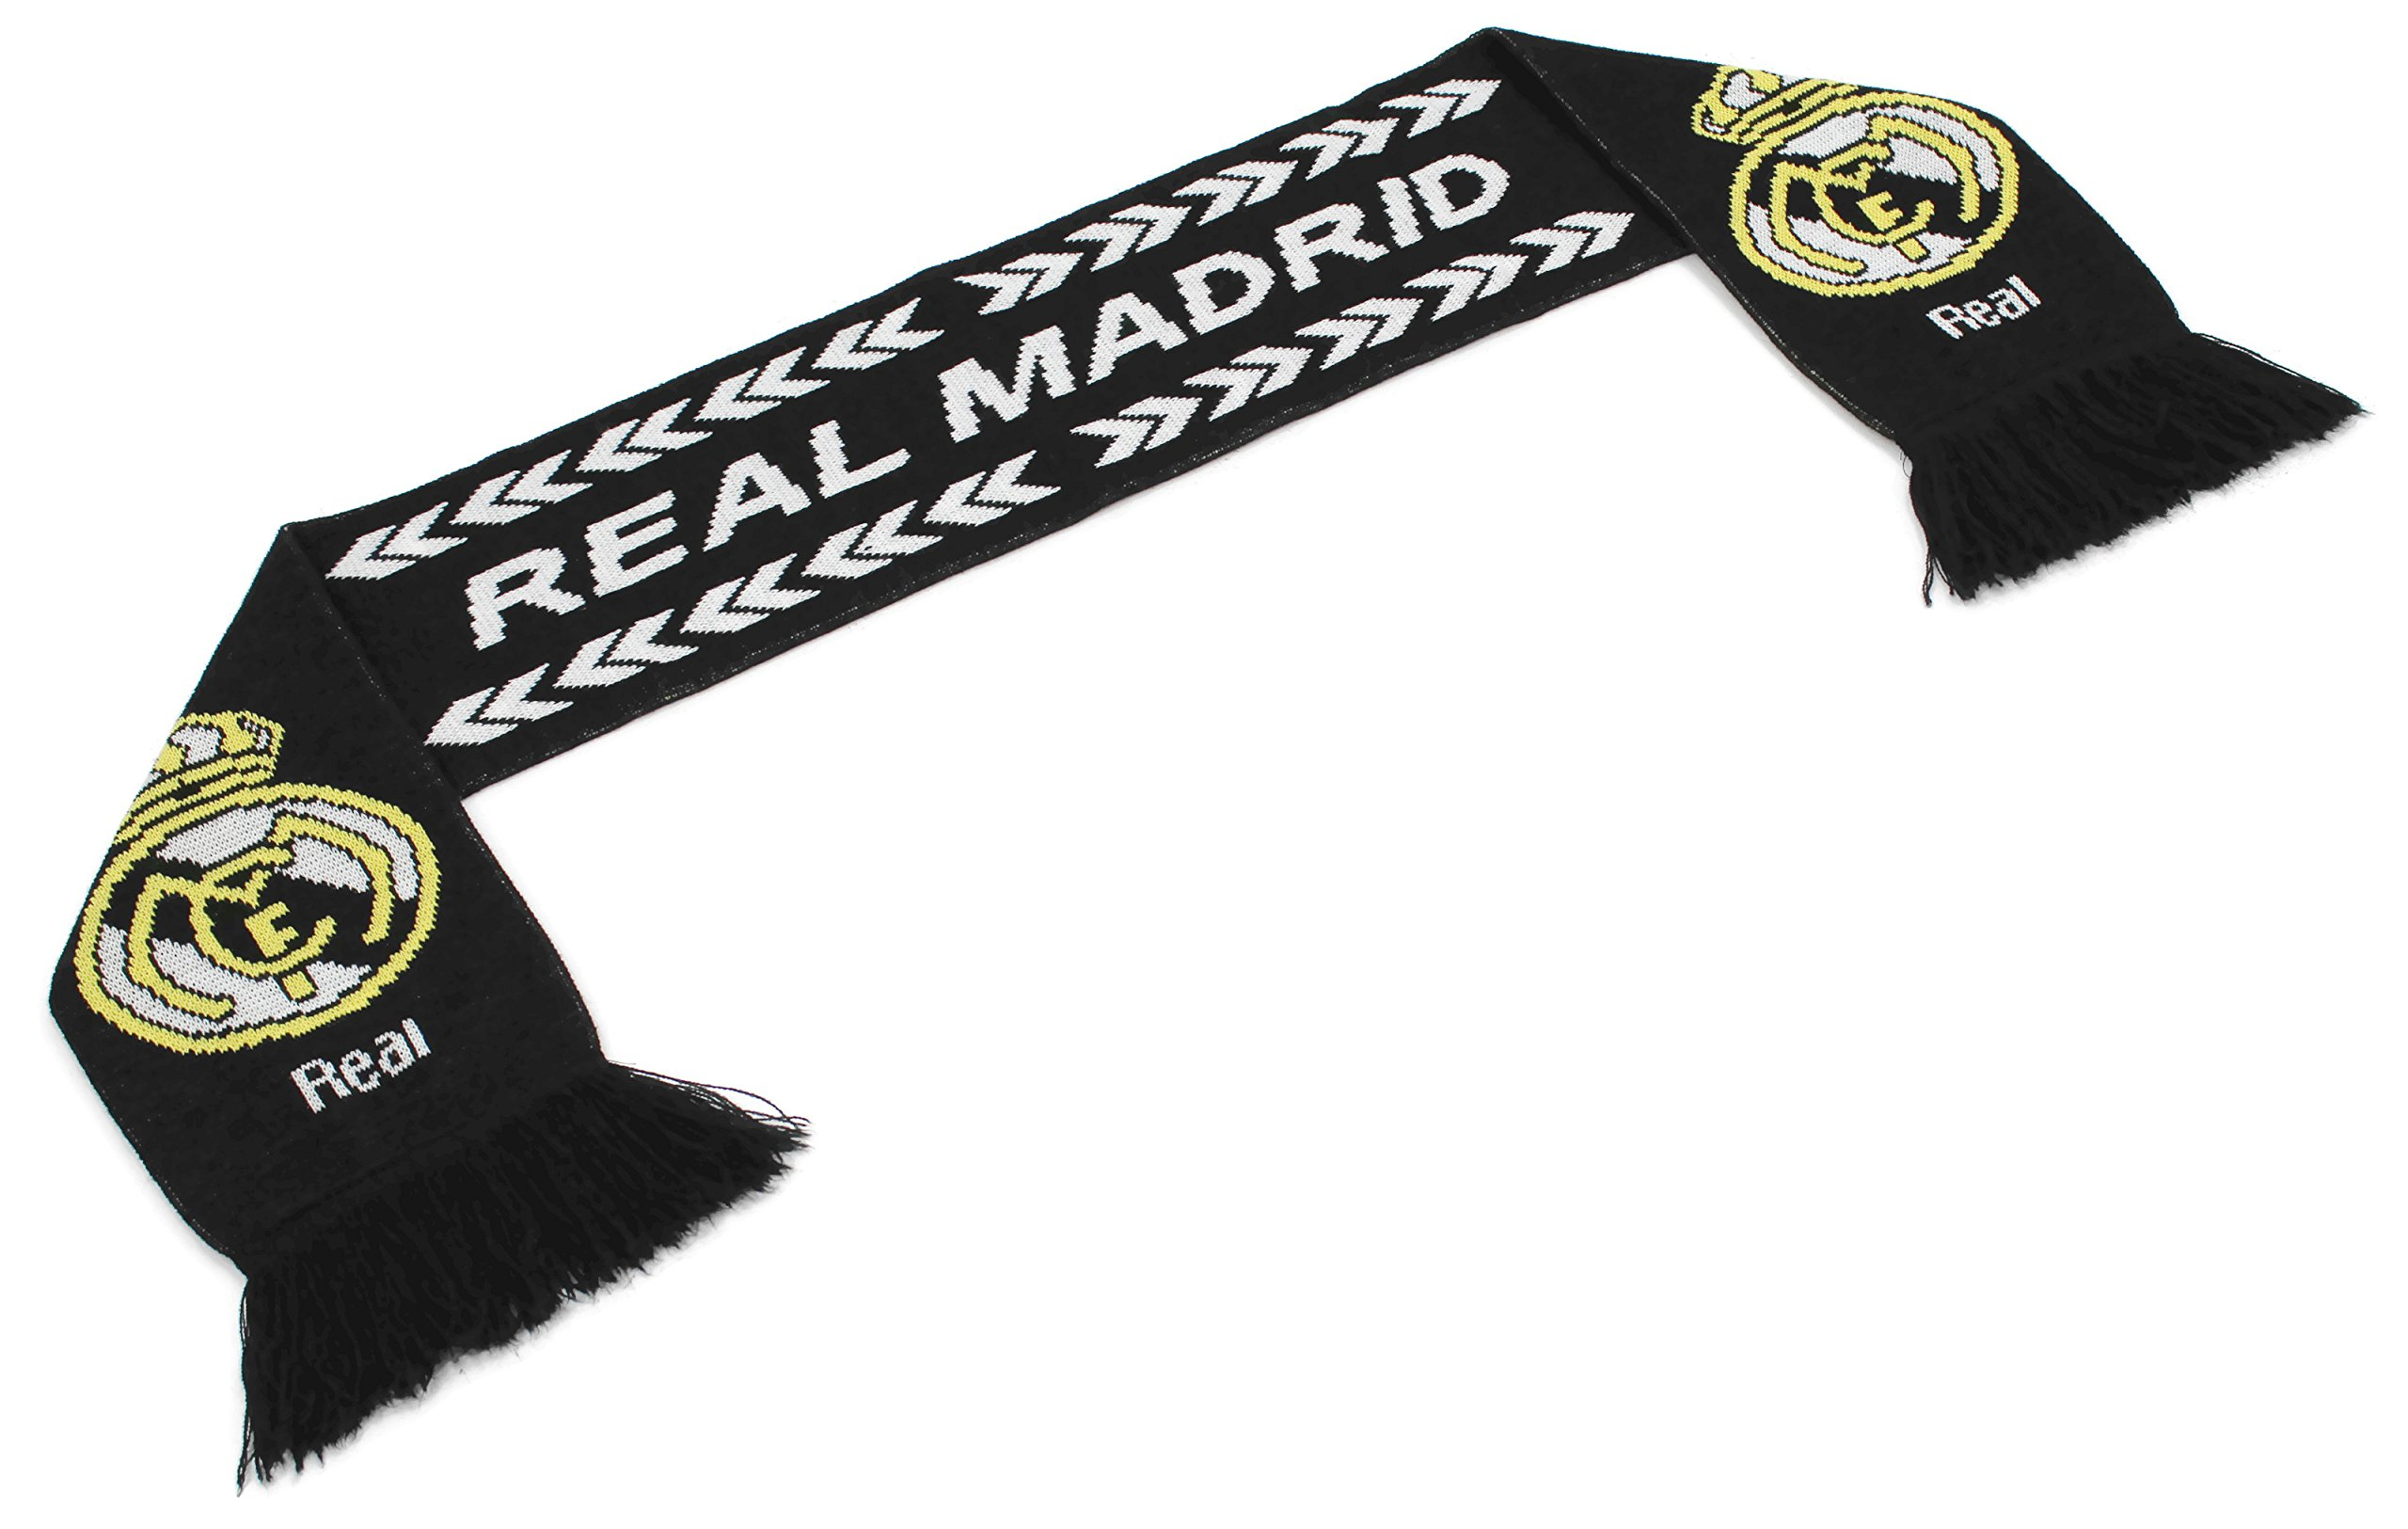 High End Hats ''Official World Soccer Team Scarf Collection'' Double Weave Head Scarf for Men or Women, Real Madrid with Logo, Black